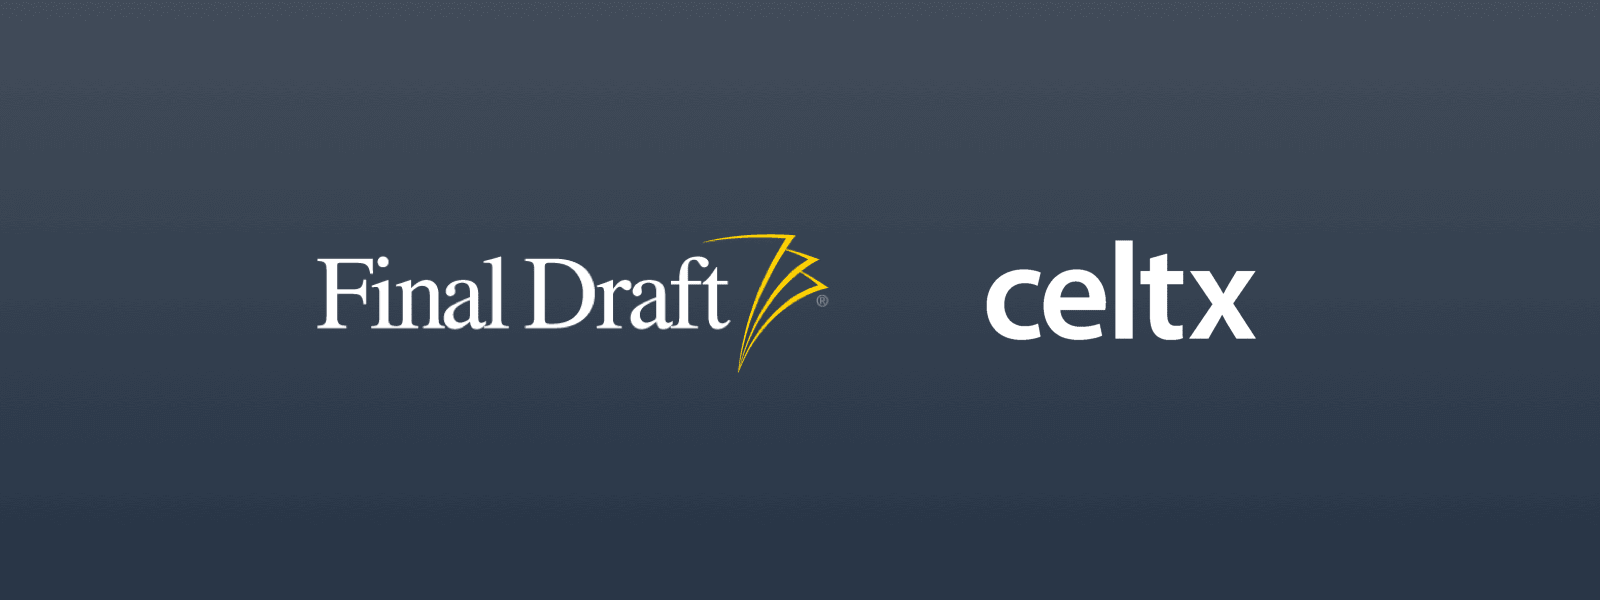 31 Best Filmmaker Software and Tools of 2016 - Final Draft - Celtx